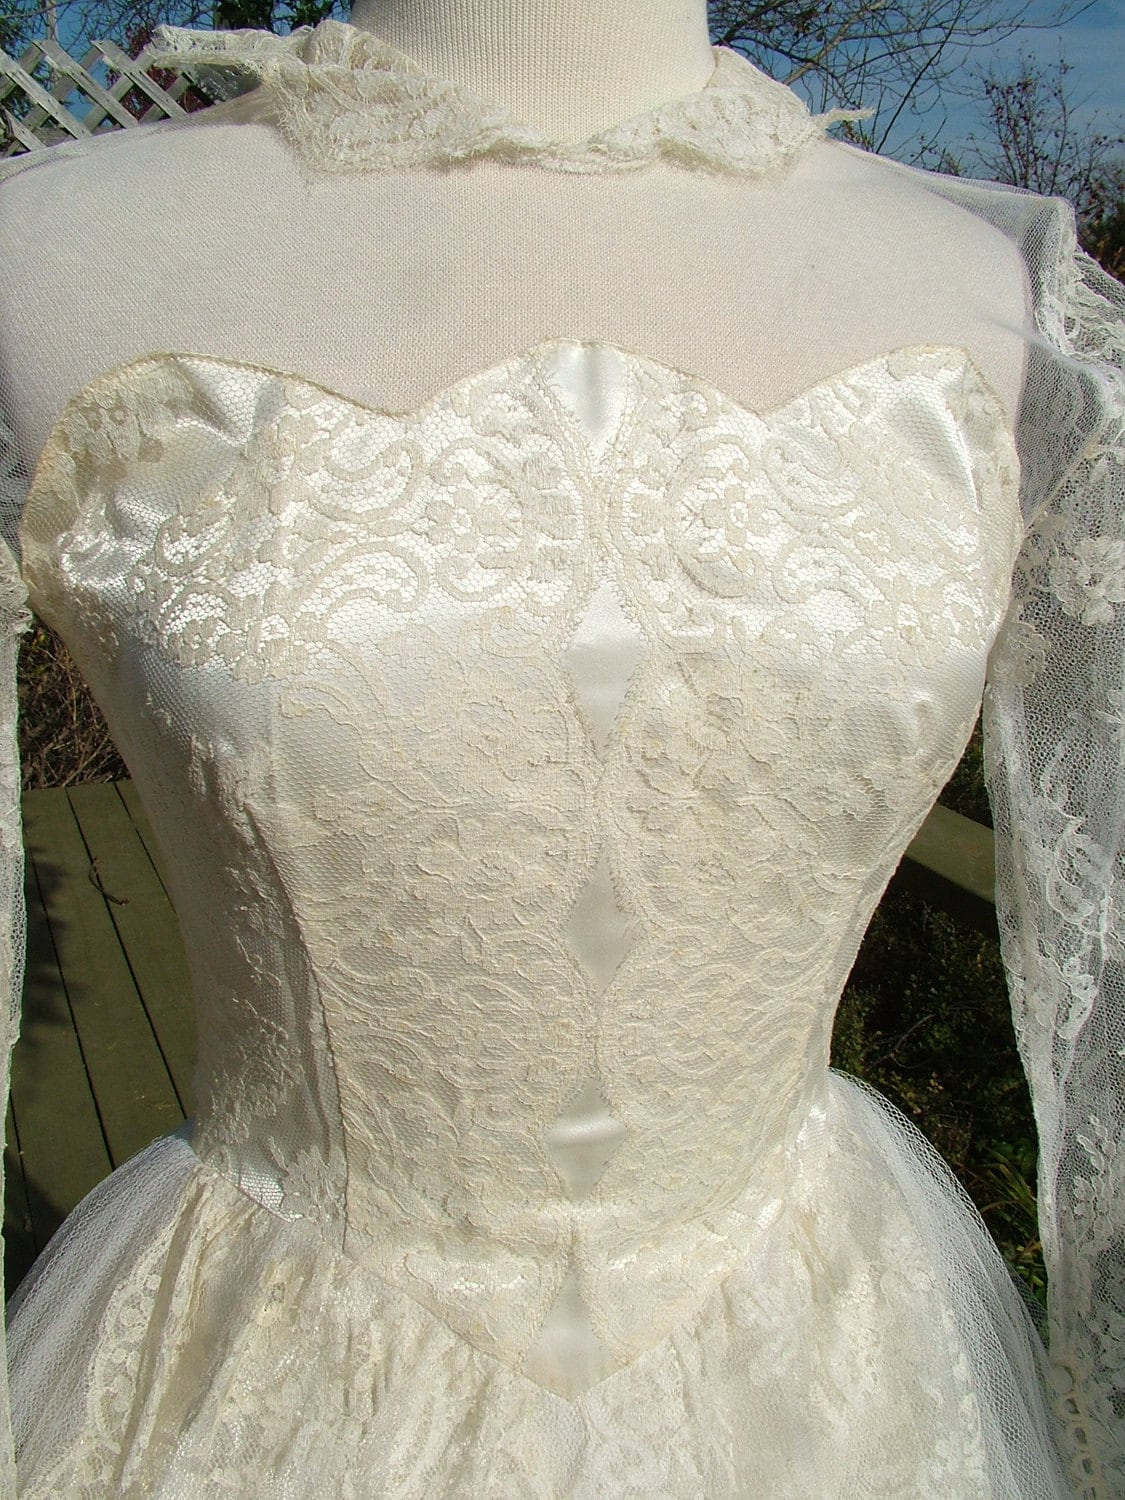 1950s Lace Lace Fashion Article Popularity Of 1950s Lace: Vintage Wedding Dress Chantilly Lace Tulle 1950s Tea Length